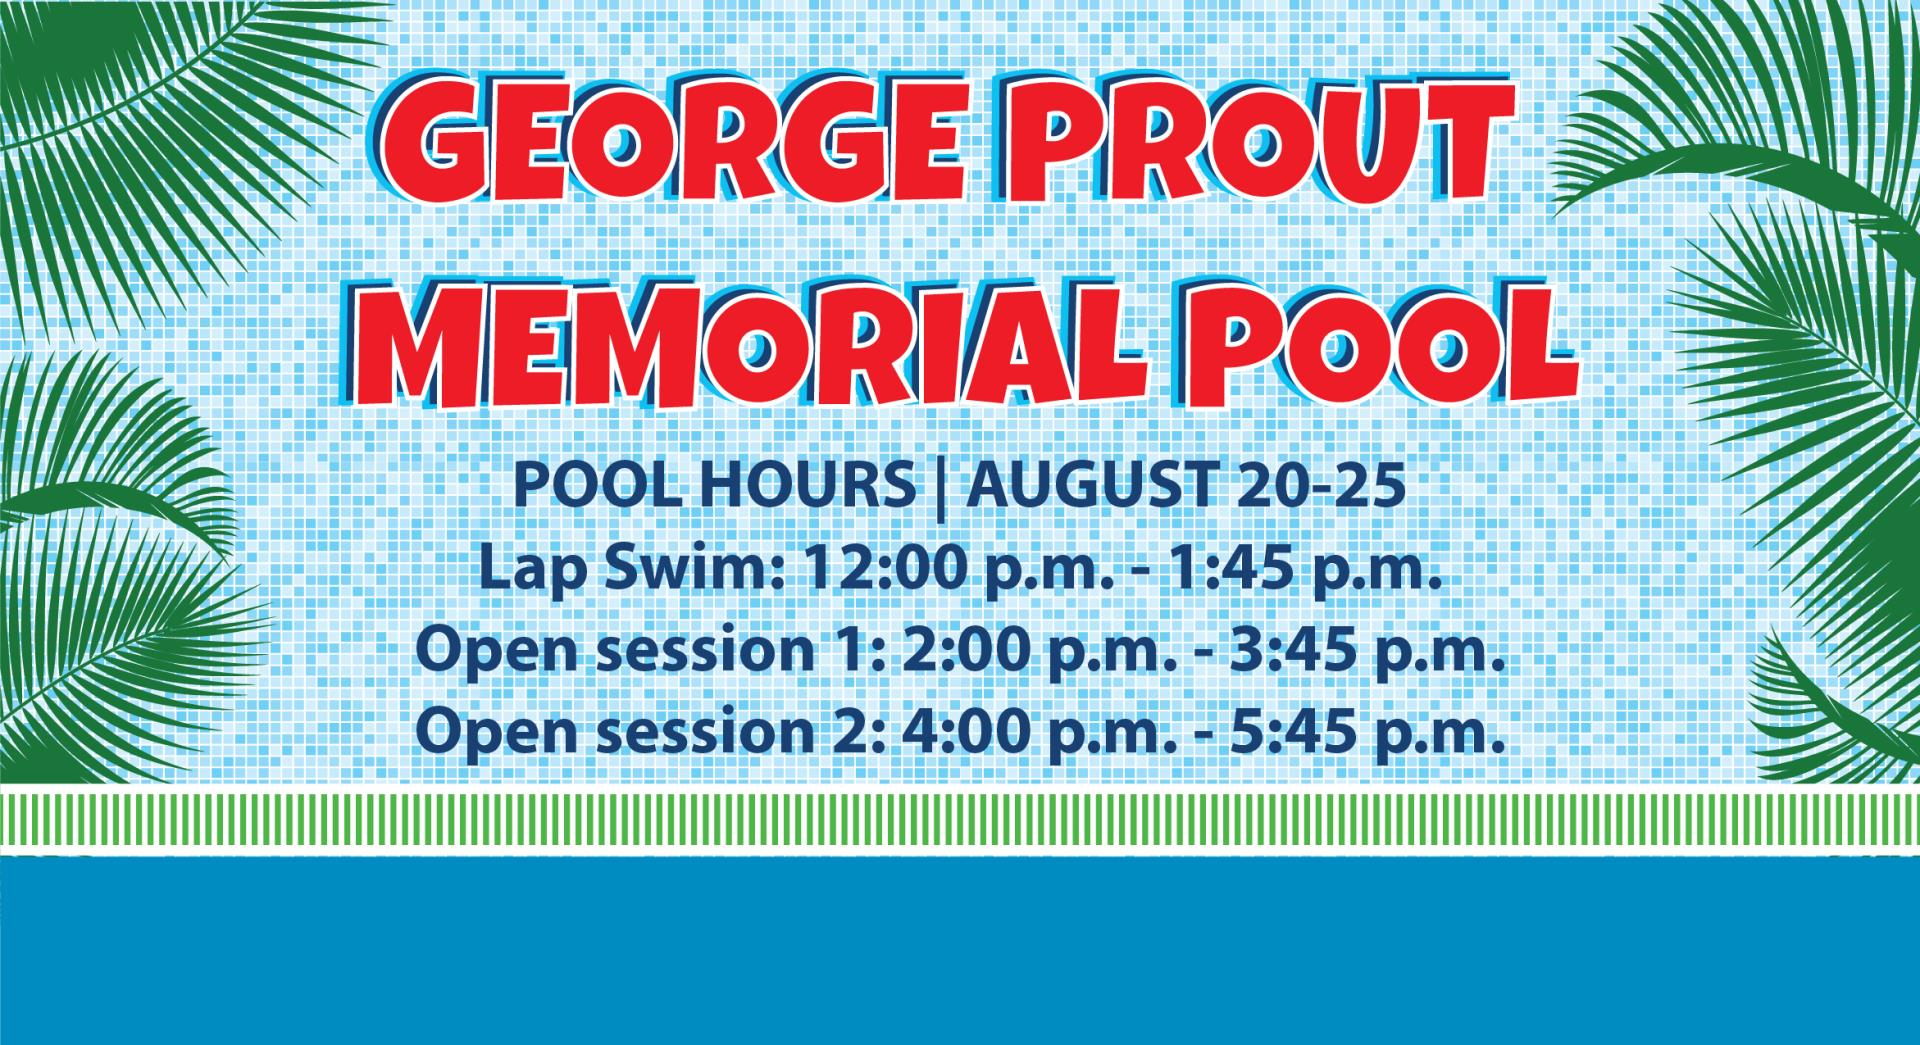 pool_hours_fairweek_parks